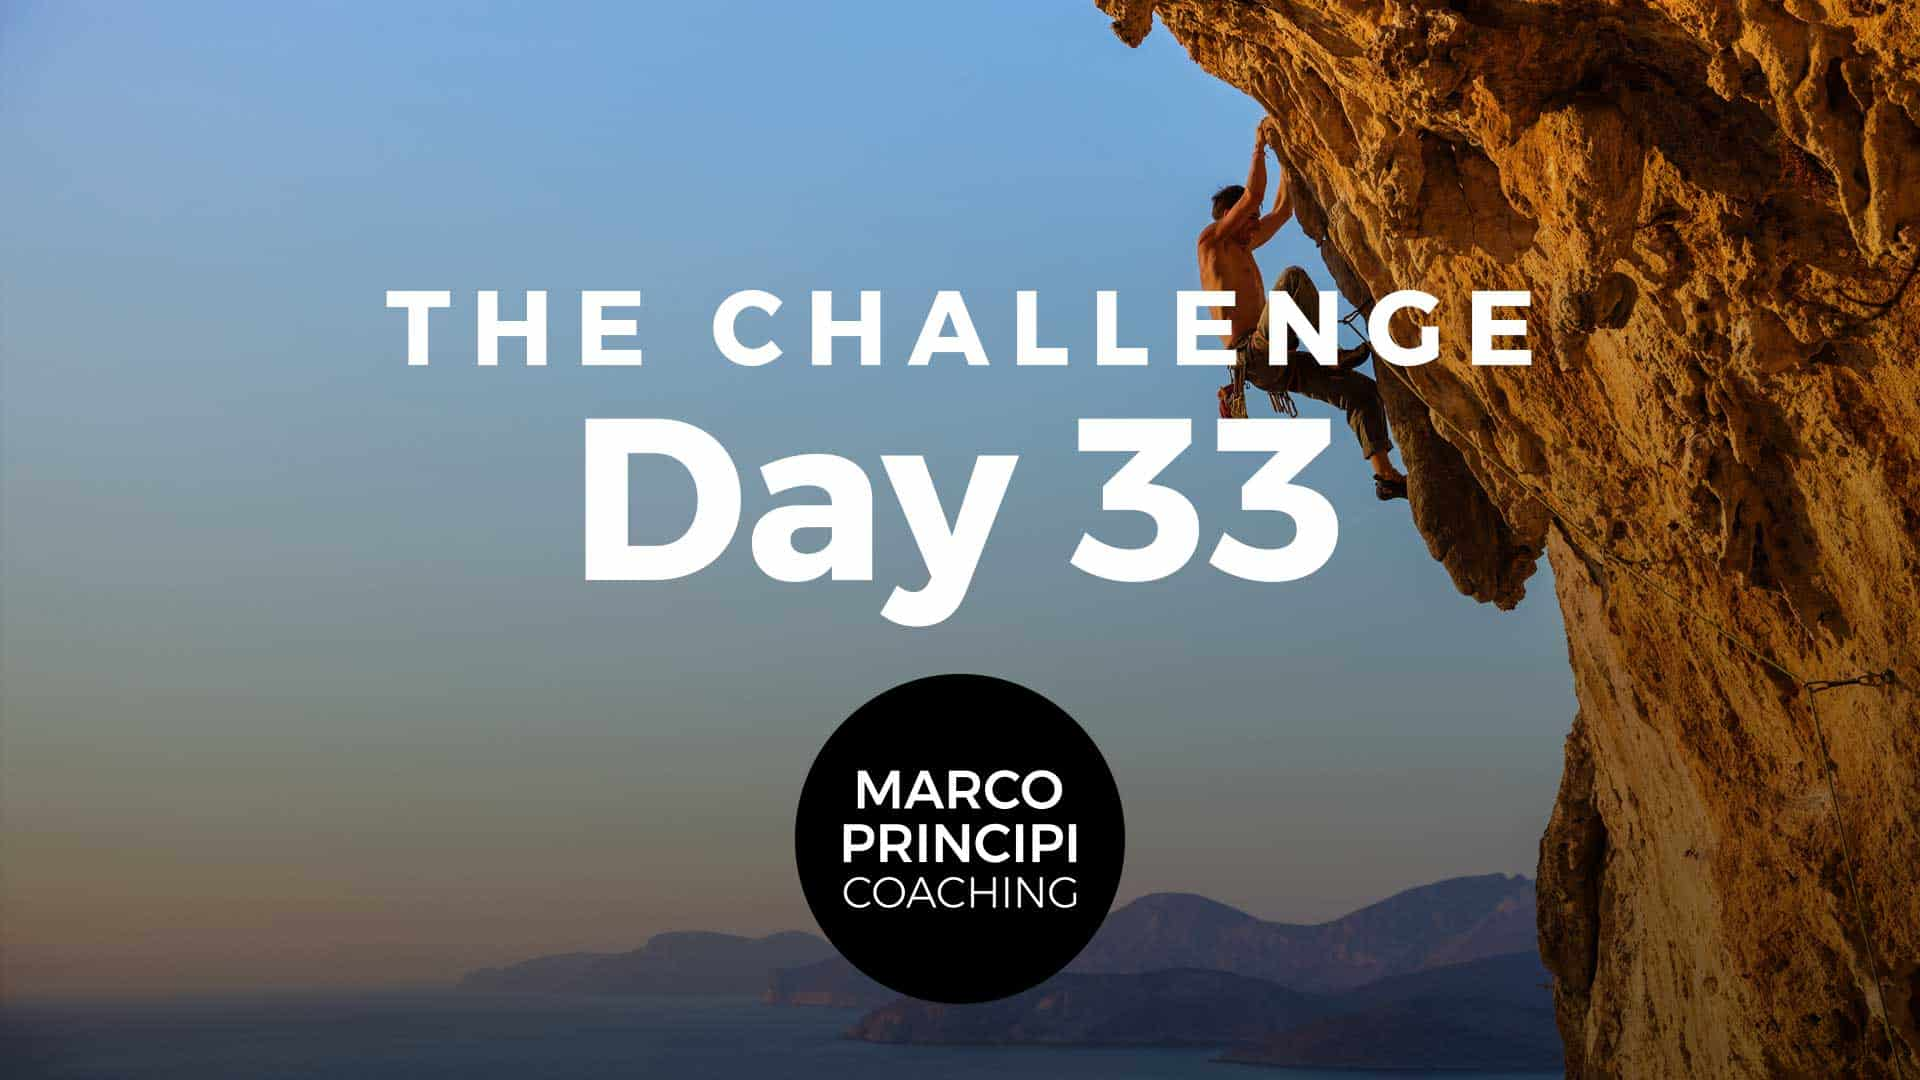 Marco Principi Coaching The Challenge Day 033